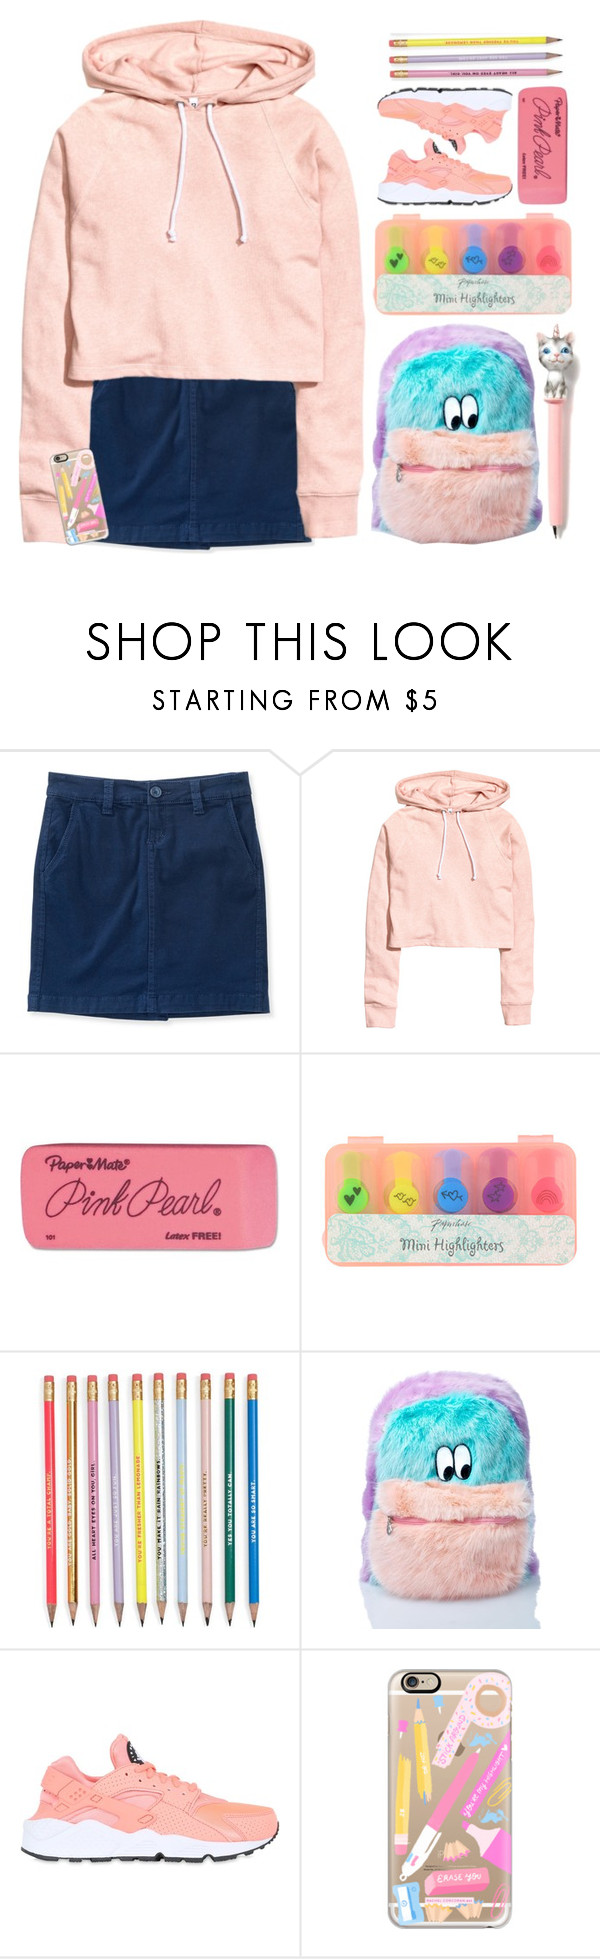 """""""School Rocks"""" by doga1 ❤ liked on Polyvore featuring Aéropostale, Paper Mate, Lazy Oaf, NIKE, Casetify and BackToSchool"""